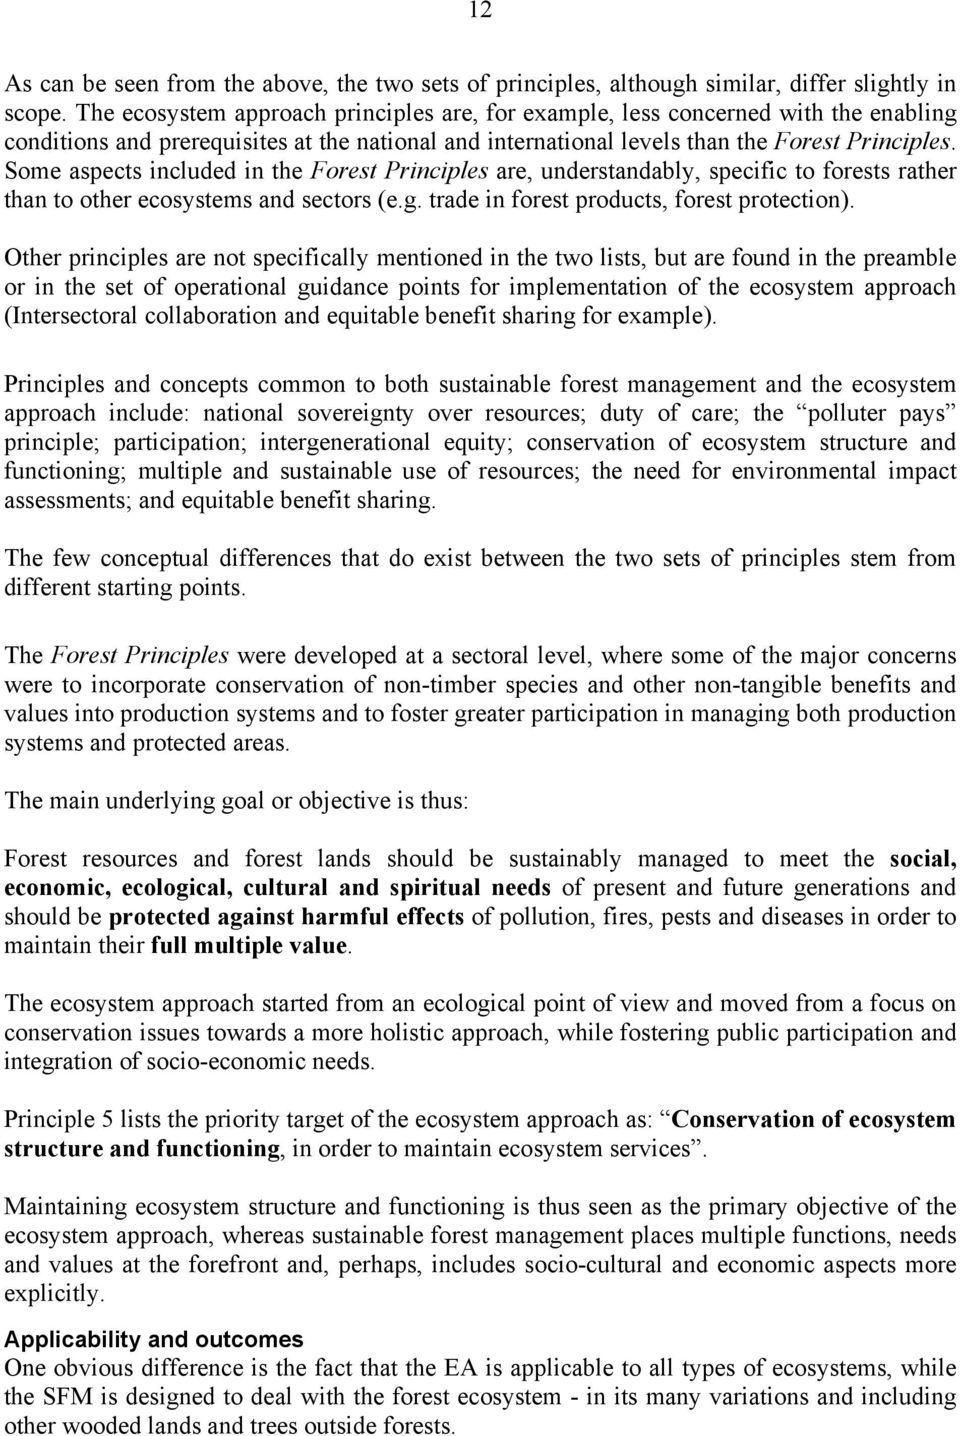 Some aspects included in the Forest Principles are, understandably, specific to forests rather than to other ecosystems and sectors (e.g. trade in forest products, forest protection).